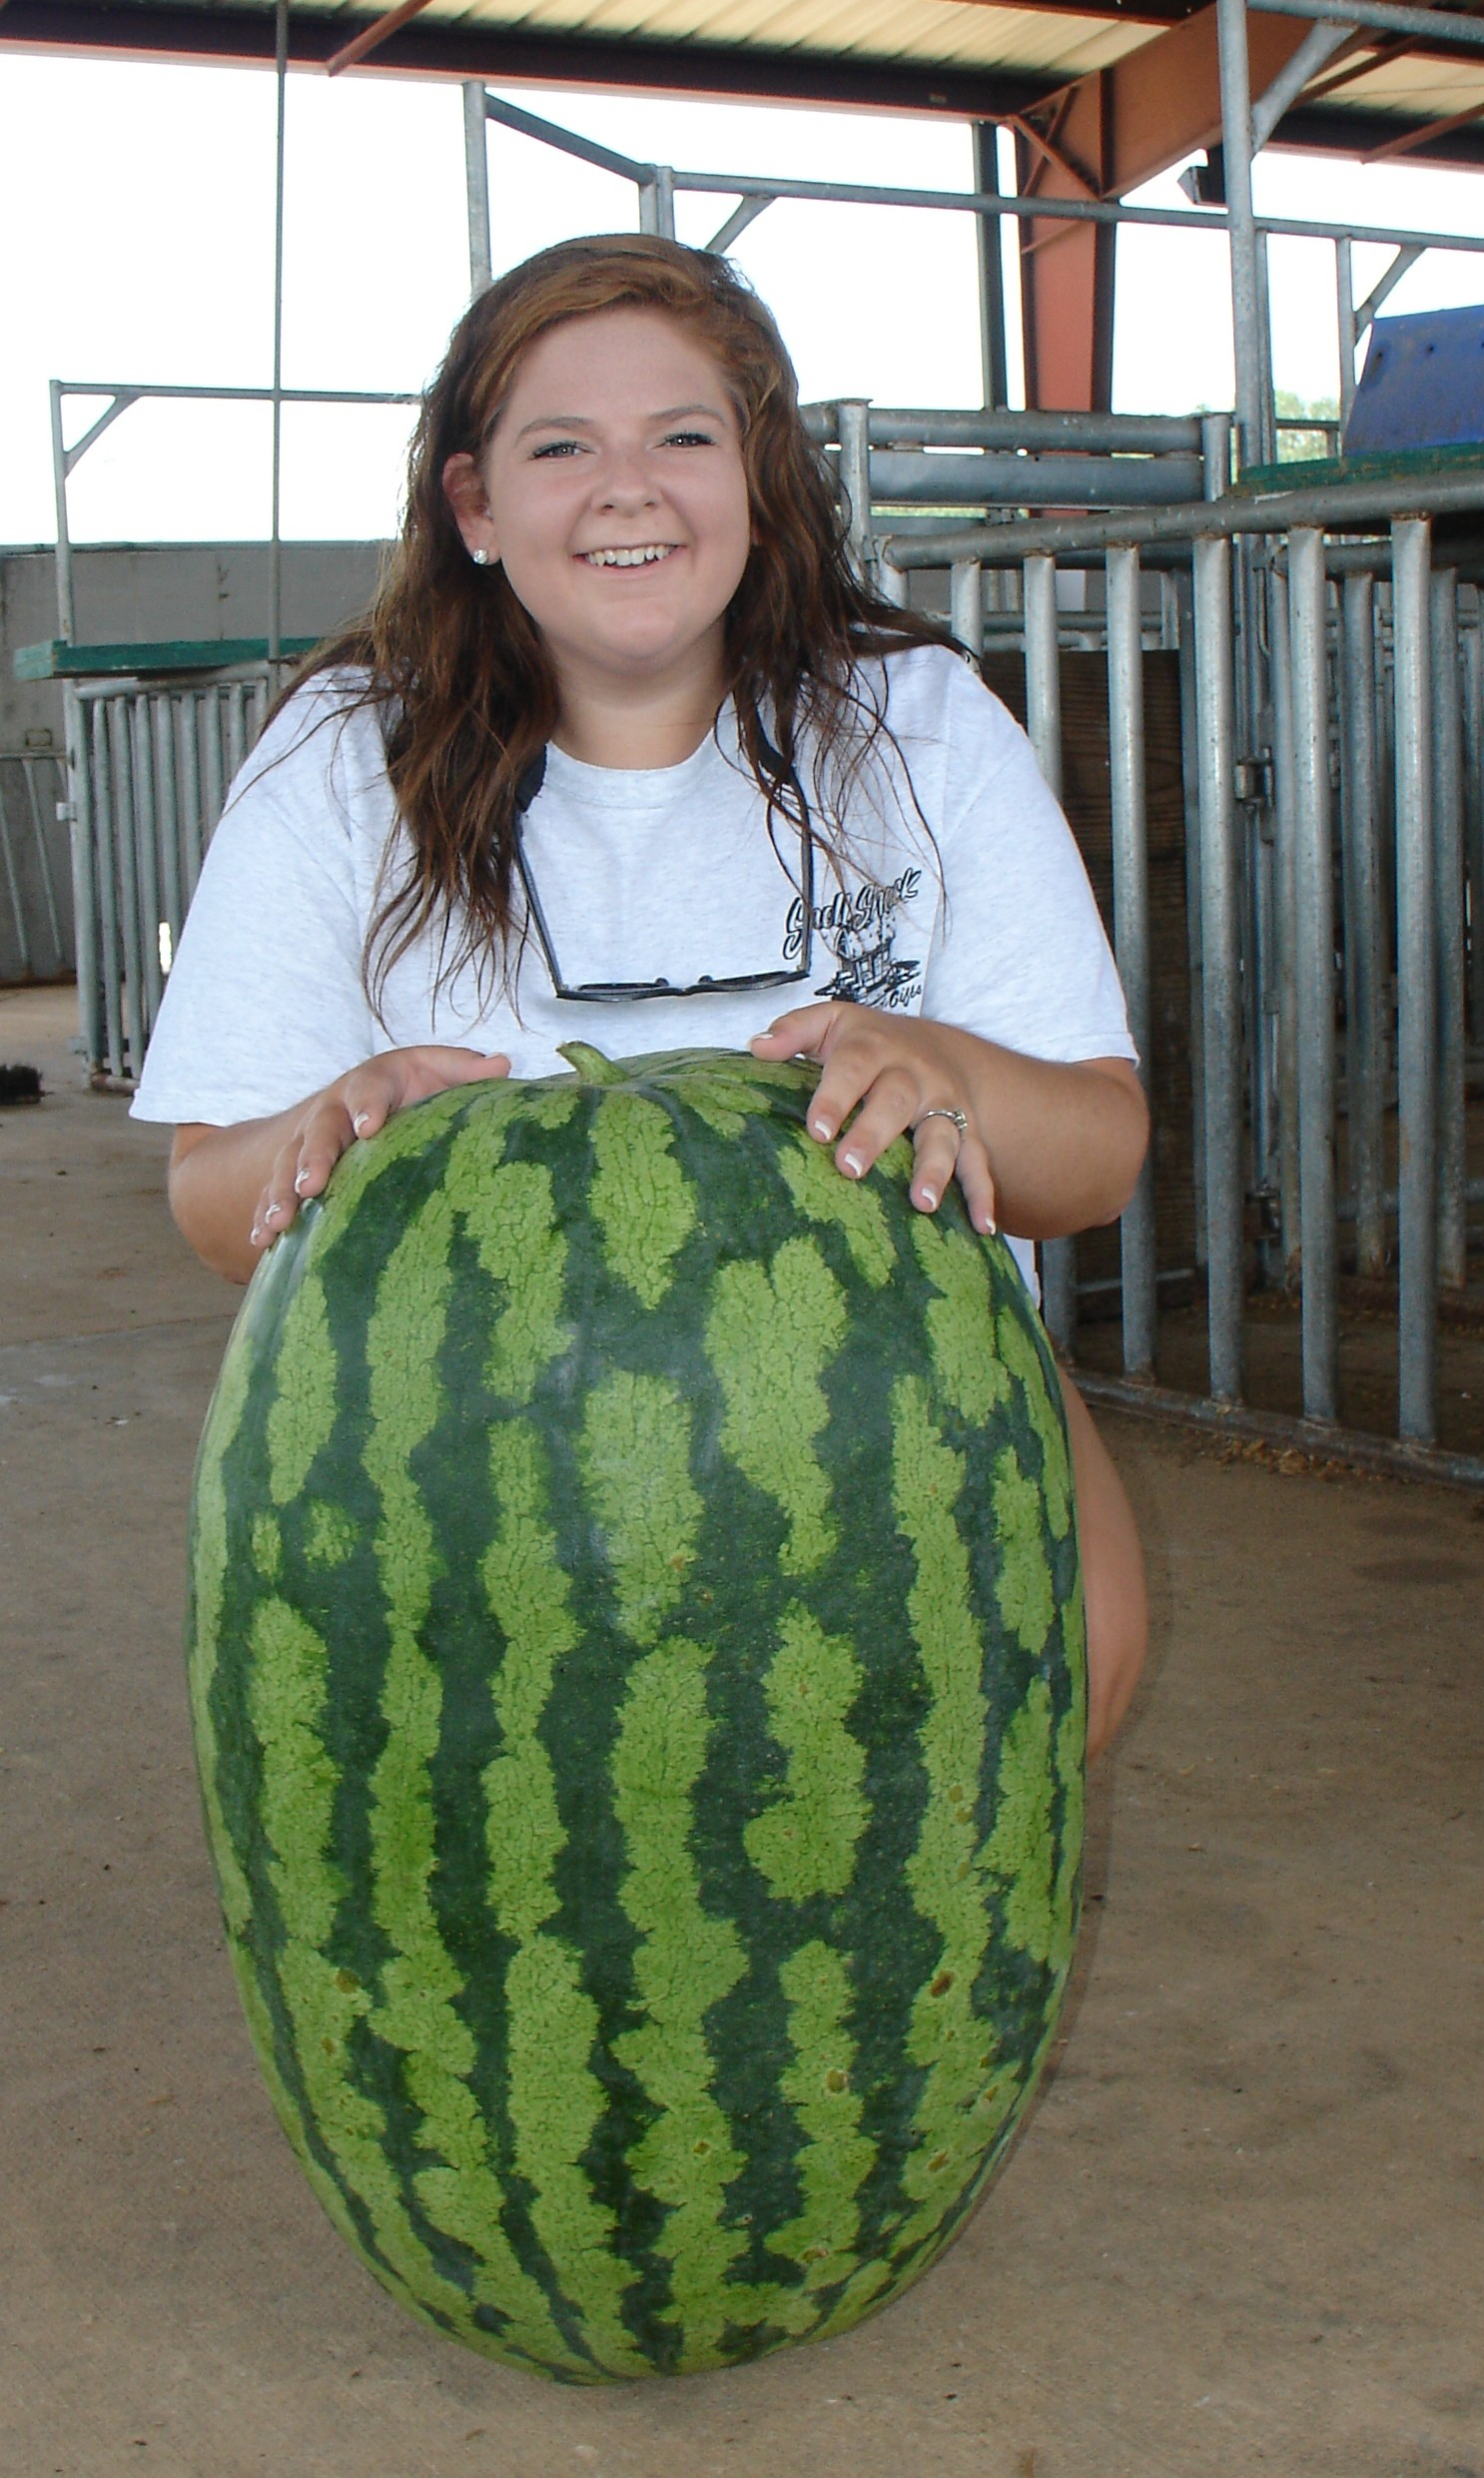 Kellee Alday of Seminole County won third place in the 2015 Georgia 4-H Watermelon Growing Contest. Her watermelon weighed in at 109 pounds.